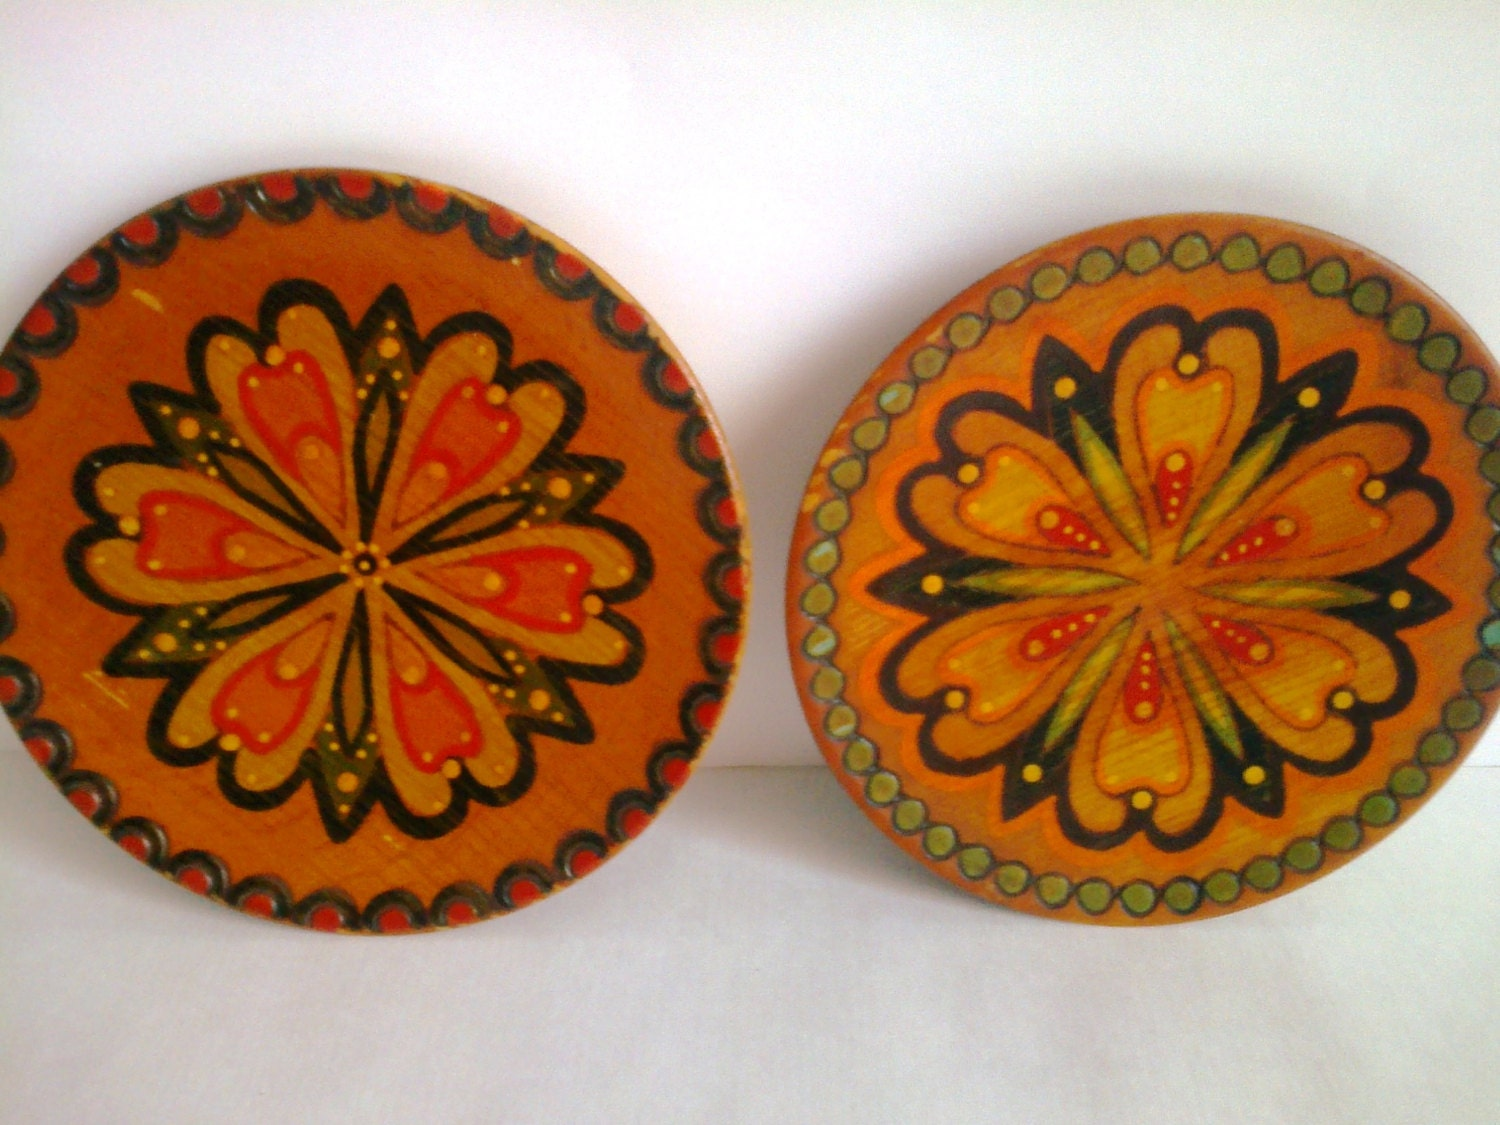 Decorative Wall Plates : Vintage decorative plates wall decor set of two wooden